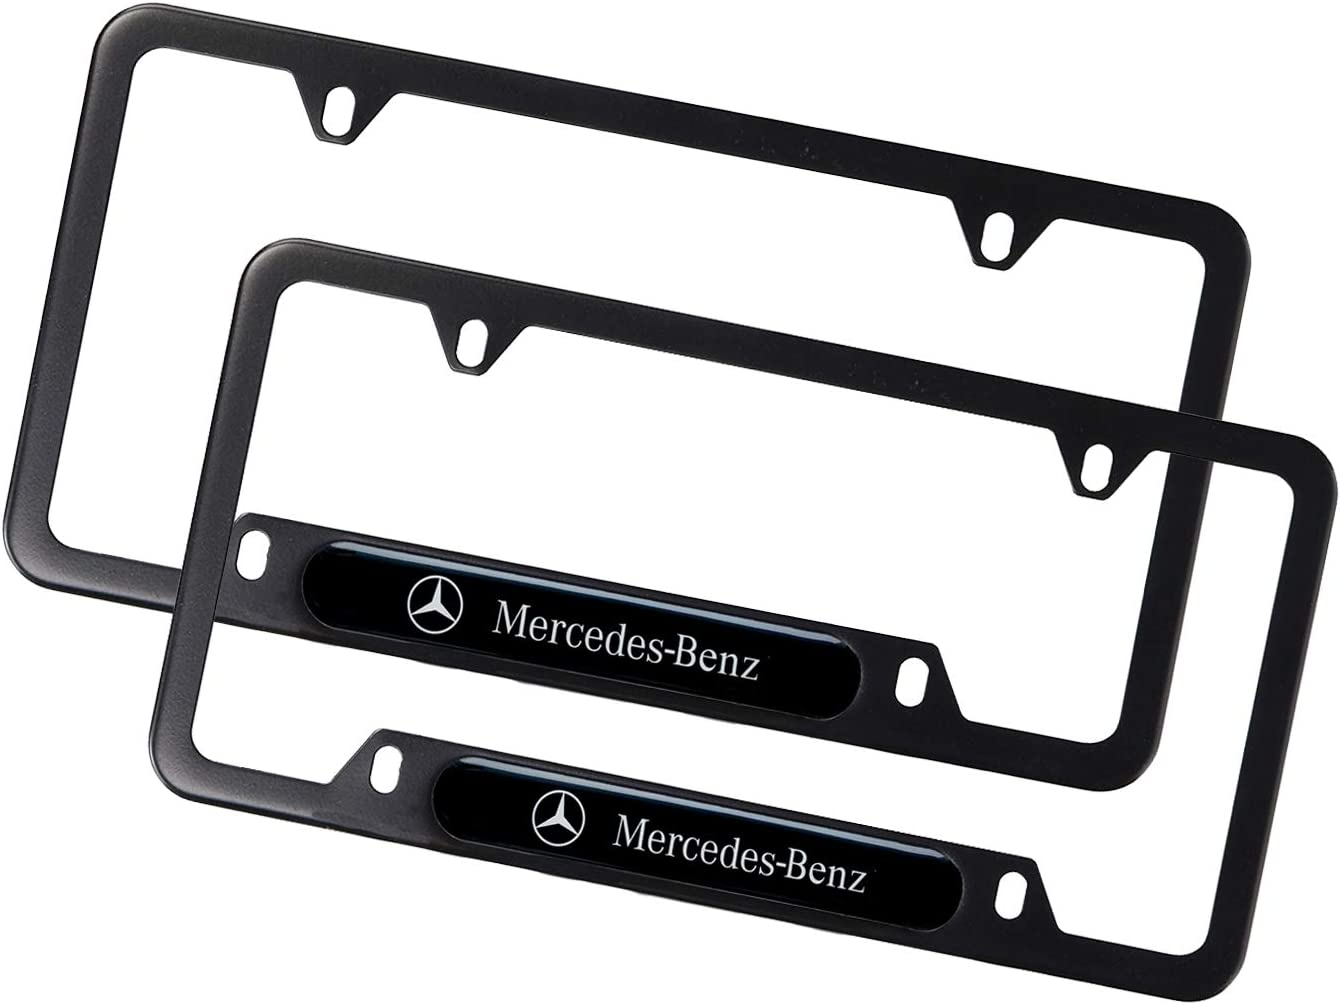 Sparkle-um 2Pcs Newest Custom Personalized 4 Hole Matte Aluminum Alloy Sline Logo License Plate Frame with Screw Caps Cover Set,Applicable to US Standard car License Frame,for Audi Sline Matte Black